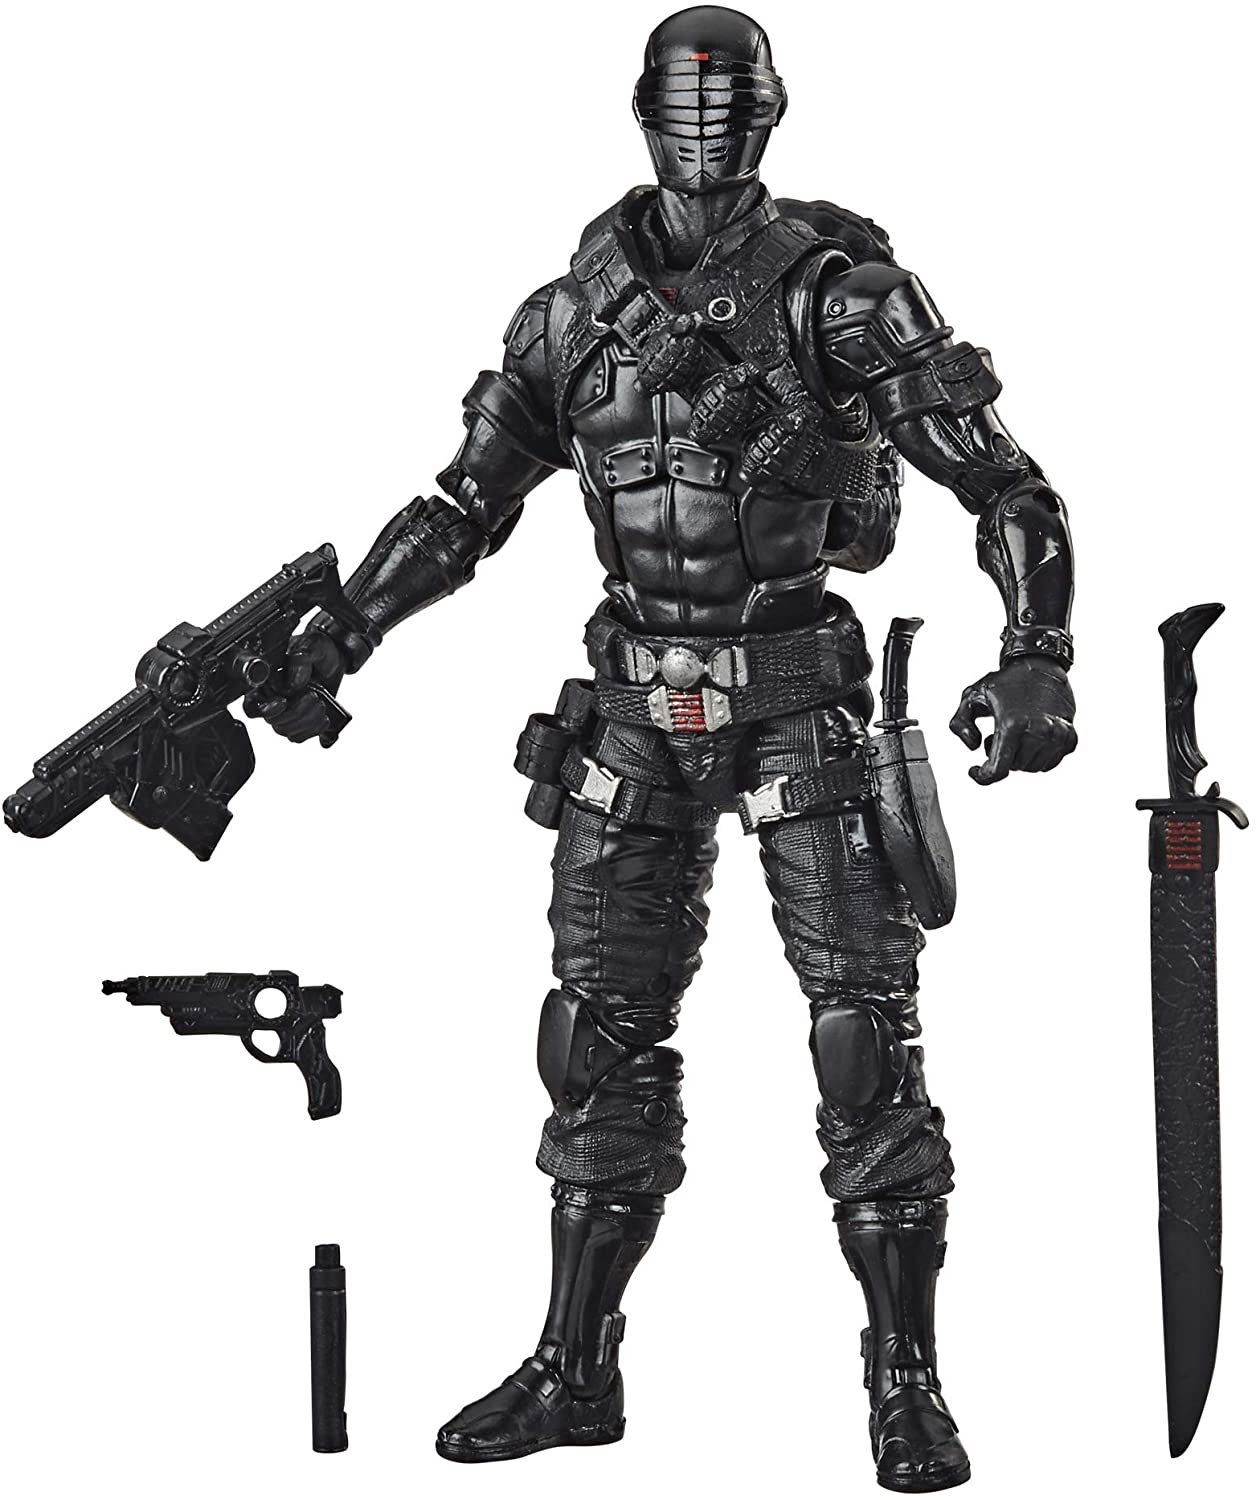 Image of Hasbro G.I. Joe Classified Series Snake Eyes Action Figure 02 Collectible Premium Toy with Multiple Accessories 6-Inch Scale with Custom Package Art